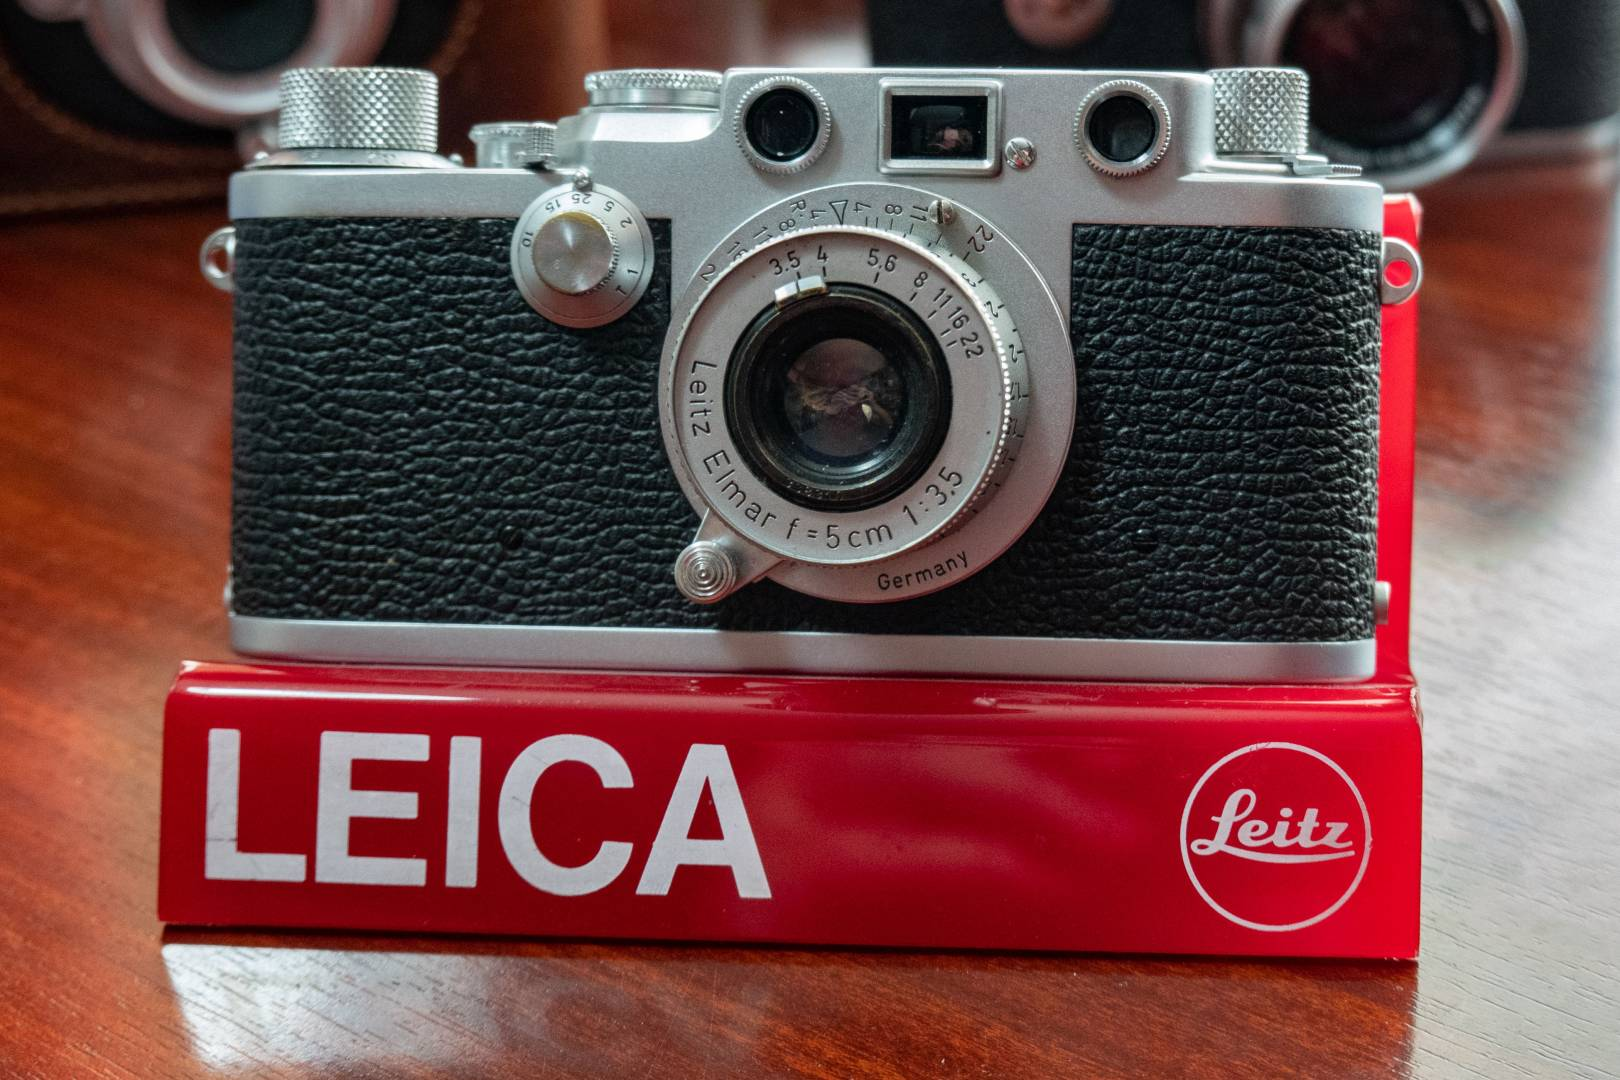 This Leica IIIf (red dial) is an excellent starter for your collection. And the 5cm f/3.5 Elmar is the archetypal standard lens. Every Leica collector has at least one of these and it won't cost you an arm and a leg.